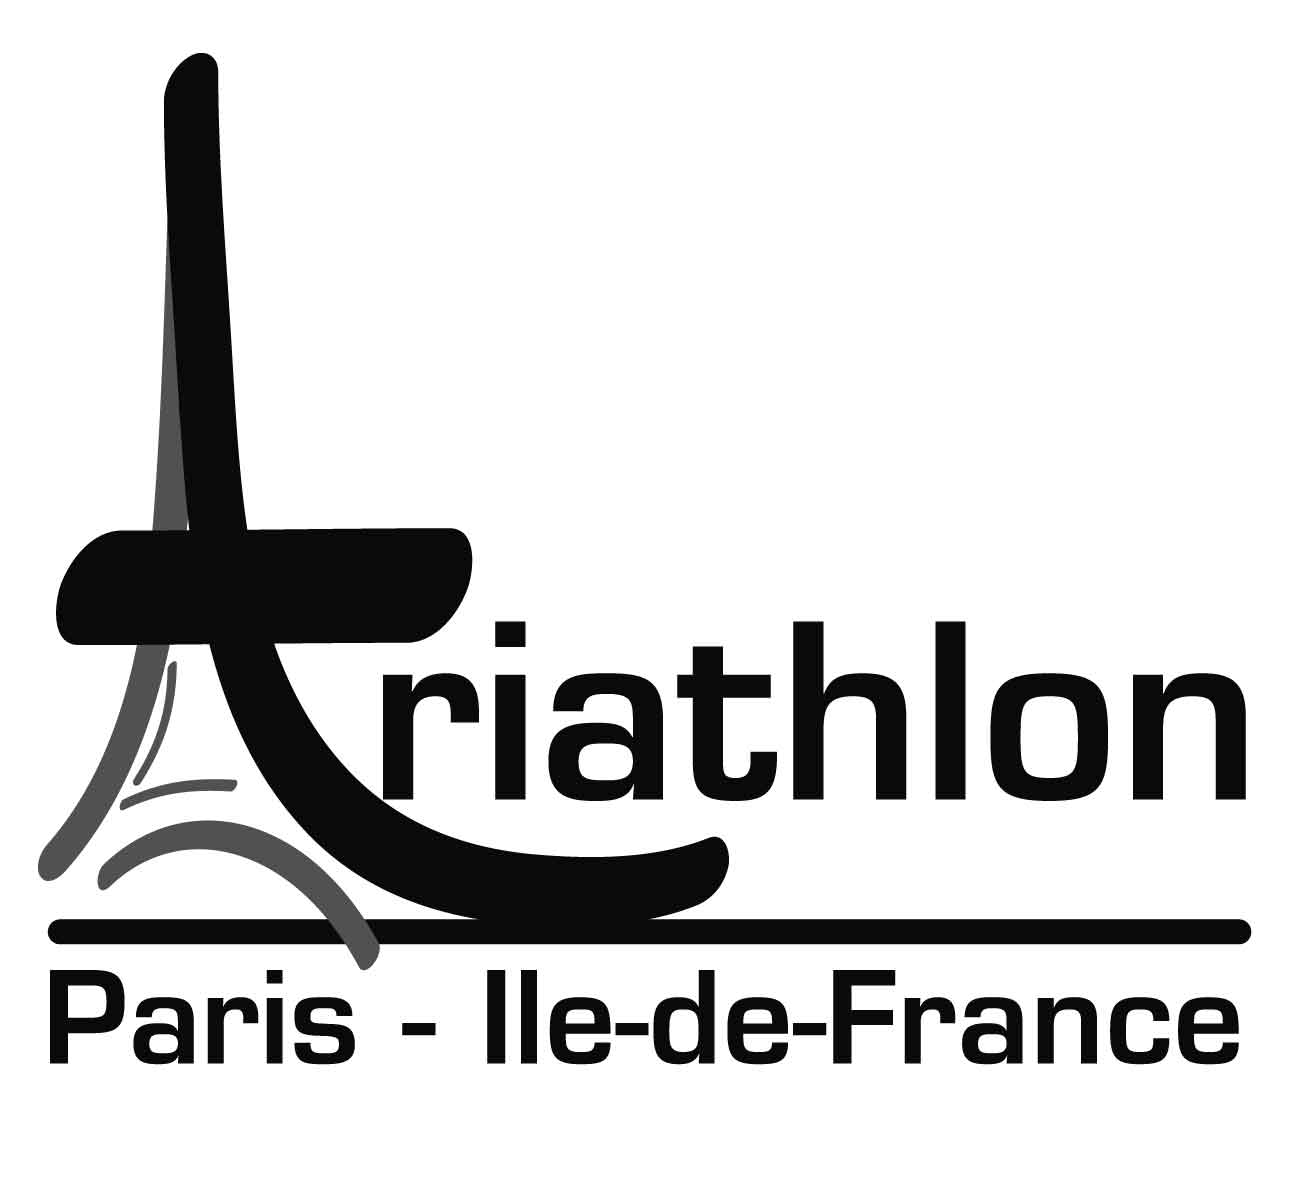 triathlon de paris triathlon de paris. Black Bedroom Furniture Sets. Home Design Ideas